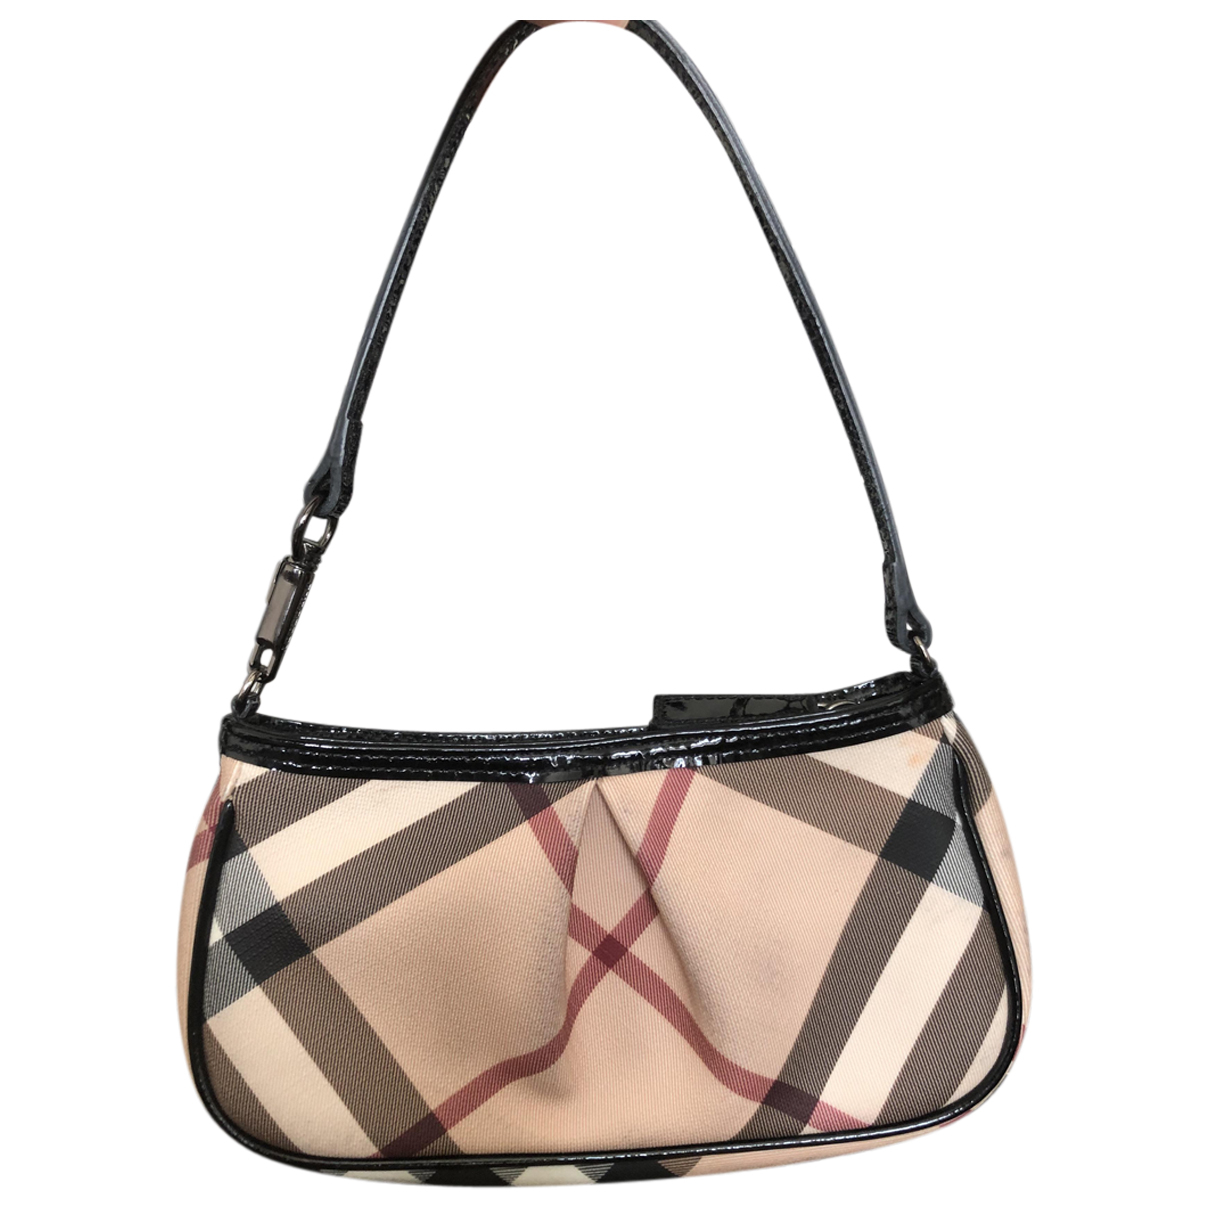 Burberry N Beige Cloth handbag for Women N